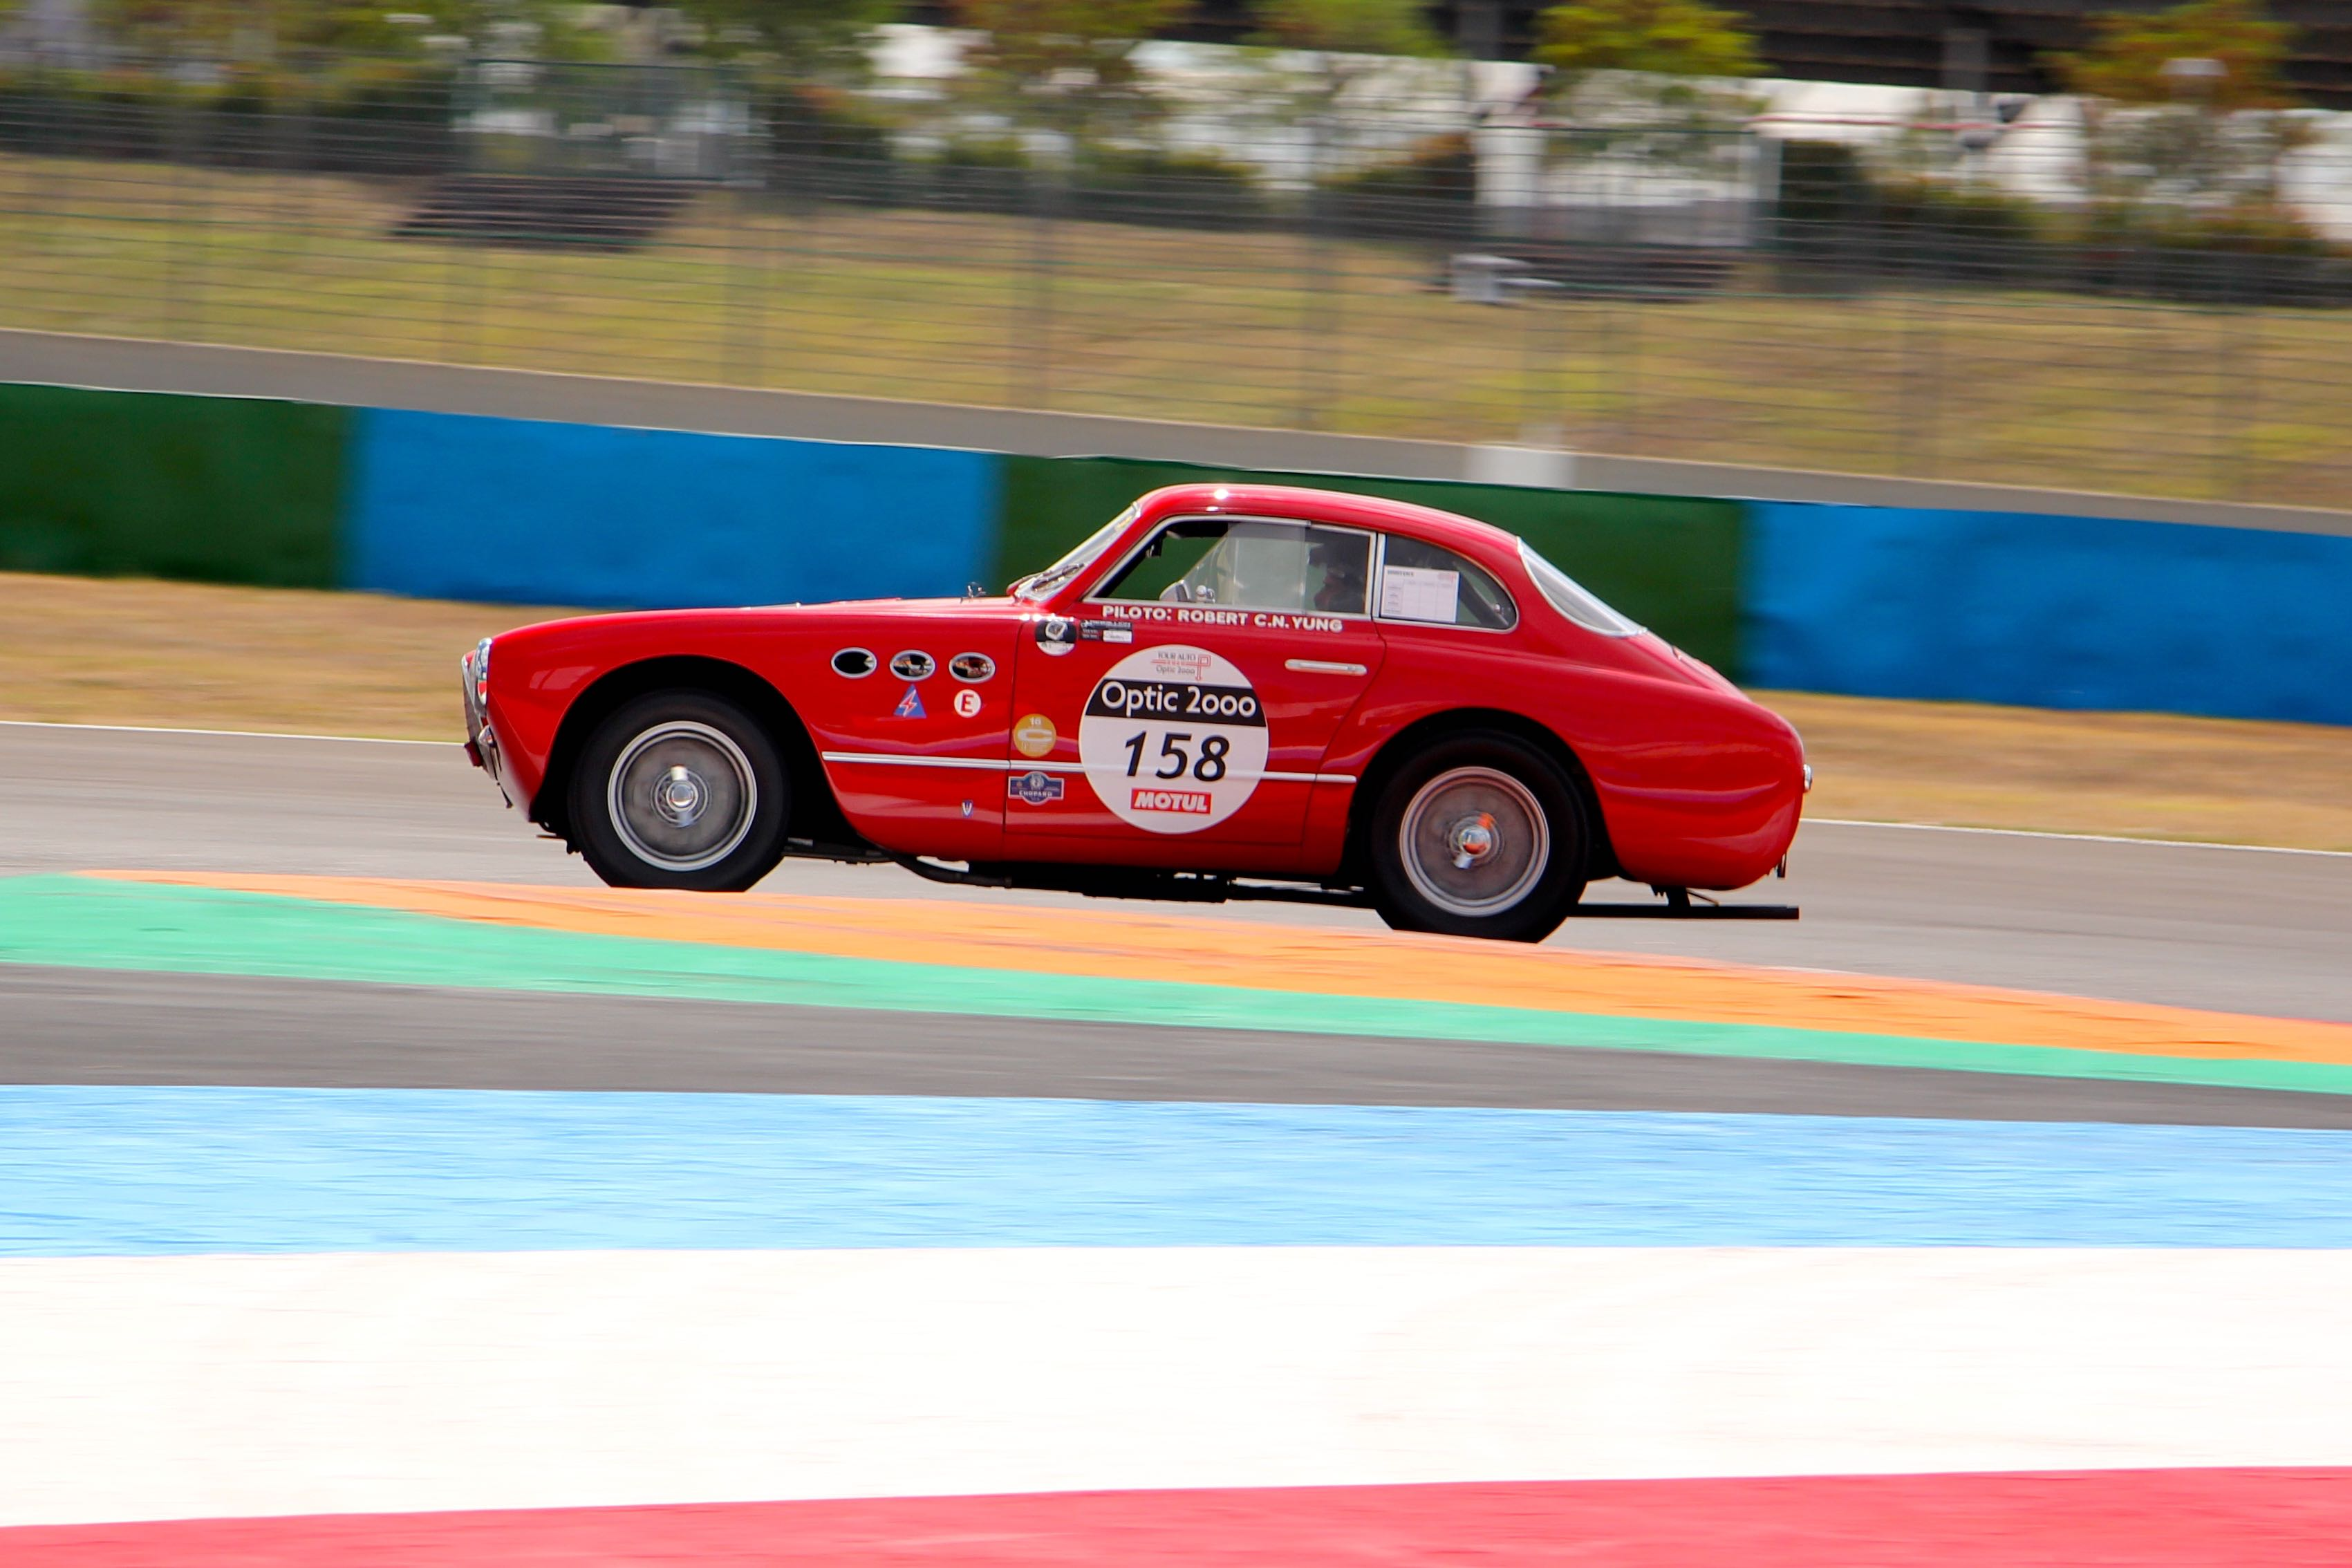 Ferrari 225S Vignale Berlinetta - circuit de Nevers Magny-Cours - Tour Auto 2020 - photo Ludo Ferrari